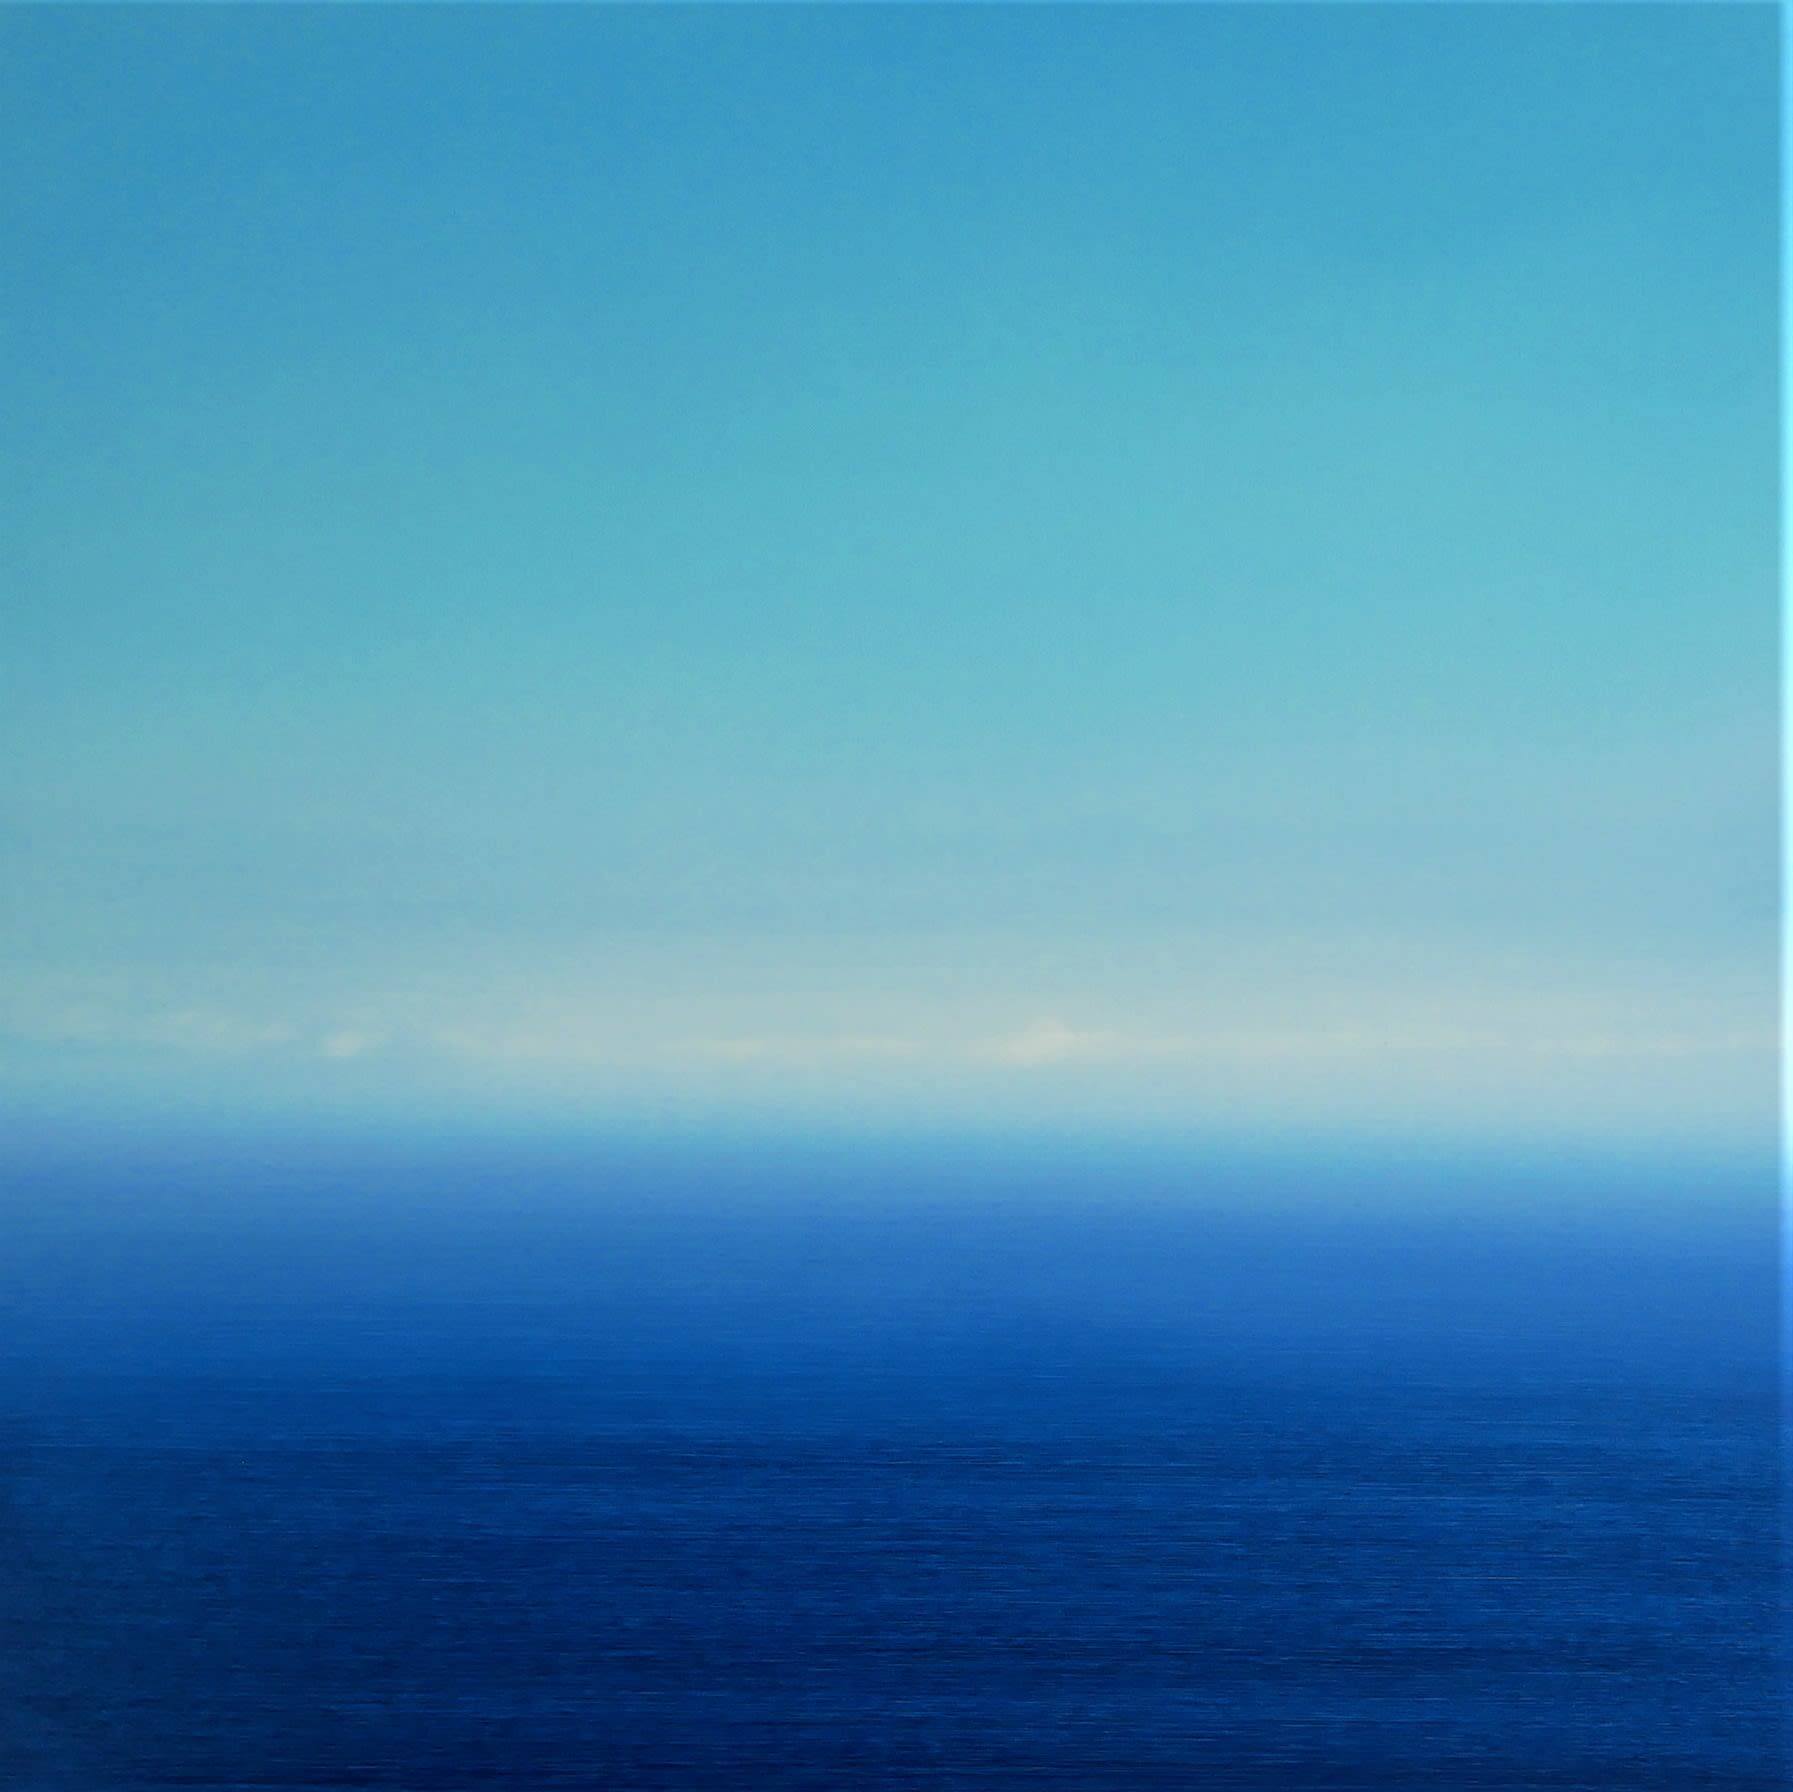 """<span class=""""link fancybox-details-link""""><a href=""""/store/artworks/8073-martyn-perryman-ocean-contemplations-st-ives-bay-2021/"""">View Detail Page</a></span><div class=""""artist""""><strong>Martyn Perryman</strong></div> <div class=""""title""""><em>Ocean Contemplations St Ives Bay</em>, 2021</div> <div class=""""signed_and_dated"""">signed on verso</div> <div class=""""medium"""">oil on canvas <br /> framed</div> <div class=""""dimensions"""">canvas: 70 x 70 cm <br /> framed: 80 x 80 cm </div><div class=""""price"""">£1,100.00</div><div class=""""copyright_line"""">Own Art: £110 x 10 Months, 0% APR</div>"""